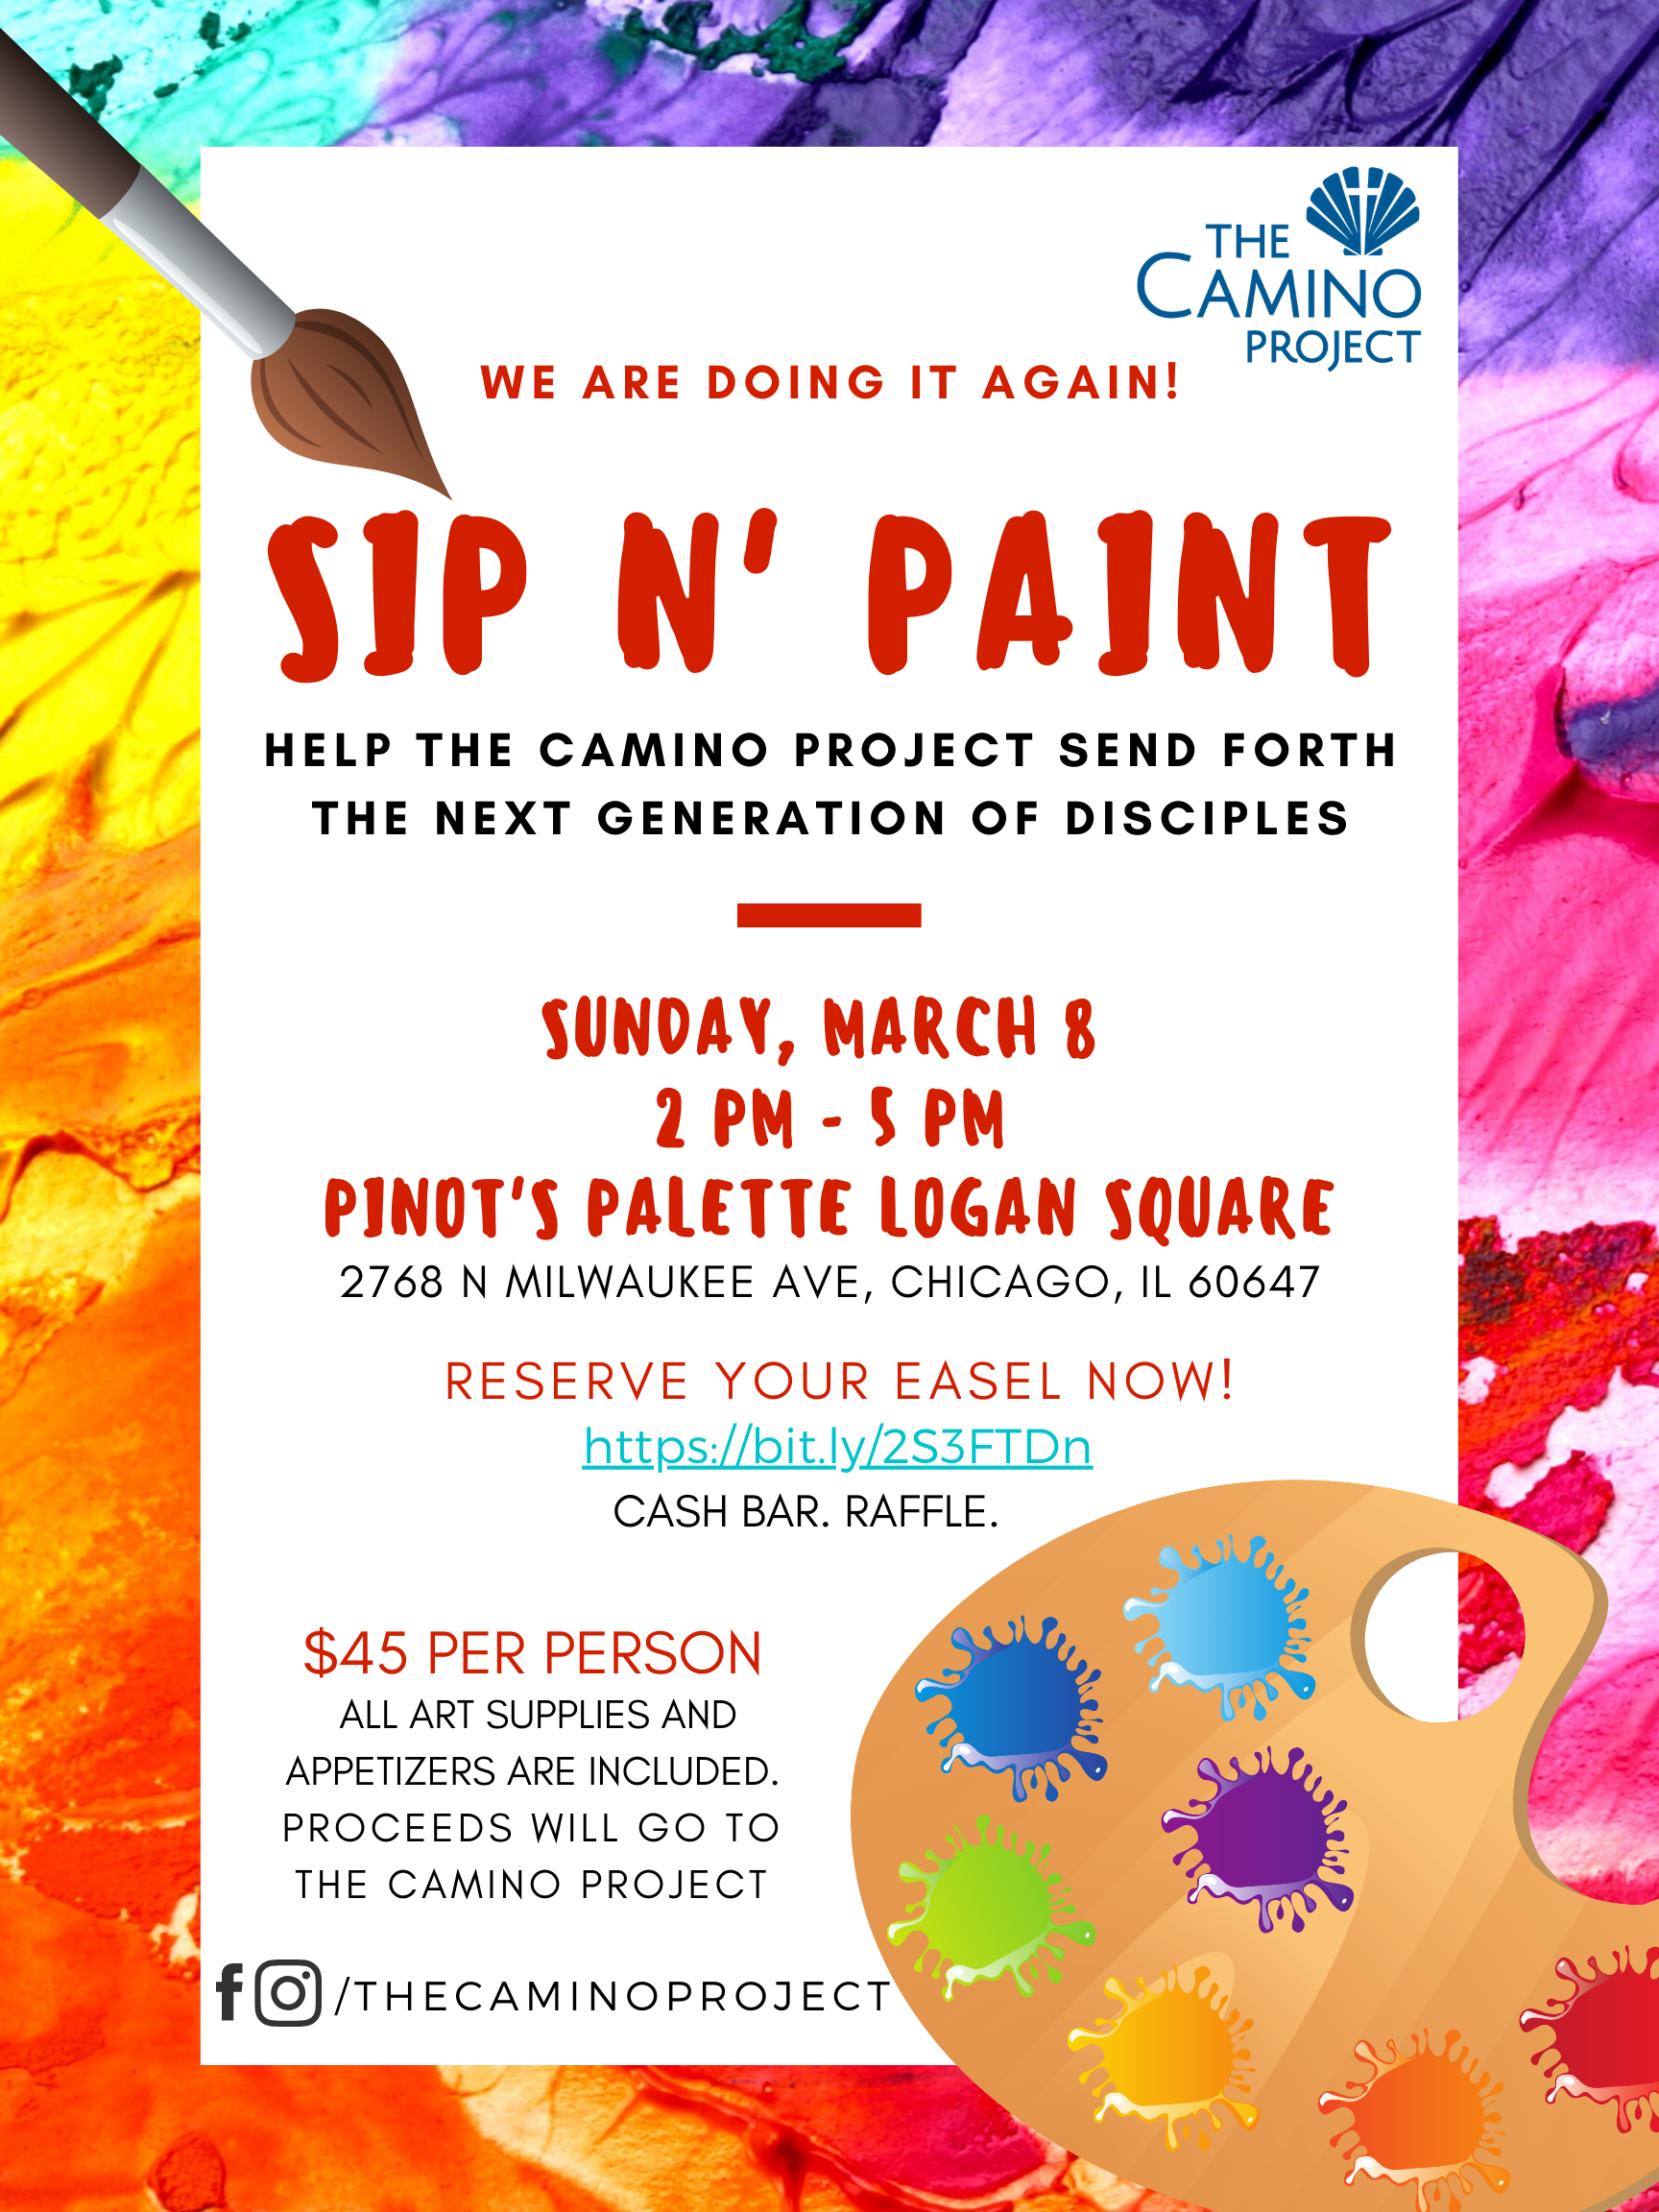 Sunday, March 8th, 2020 — Sip 'n Paint